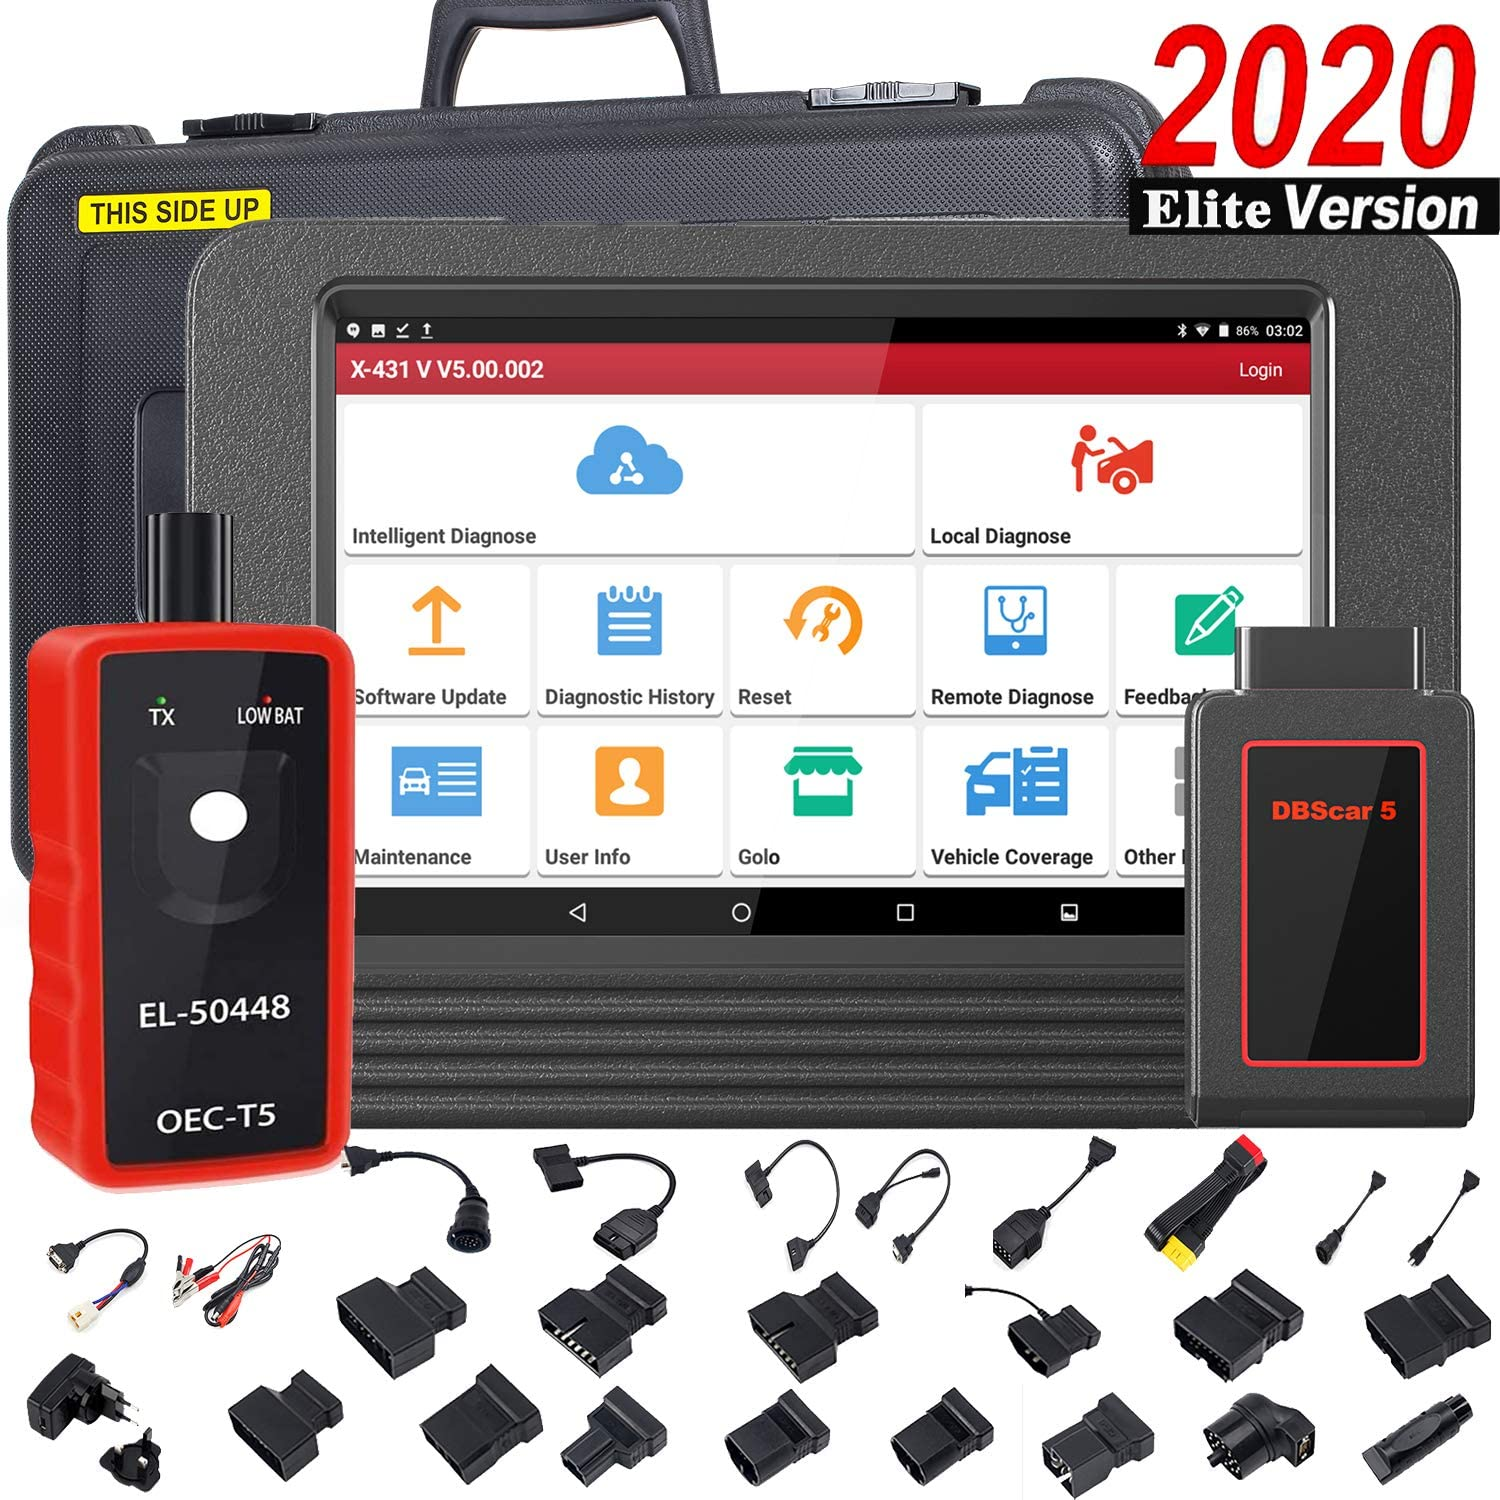 LAUNCH X431 V PRO Bi-Directional Scan Tool OBD2 Scanner Full System Scanner with ECU Coding,Actuation Test,Remote Diagnostic,30+ Reset Functions,Full Connector Kit + EL-50448 Tool